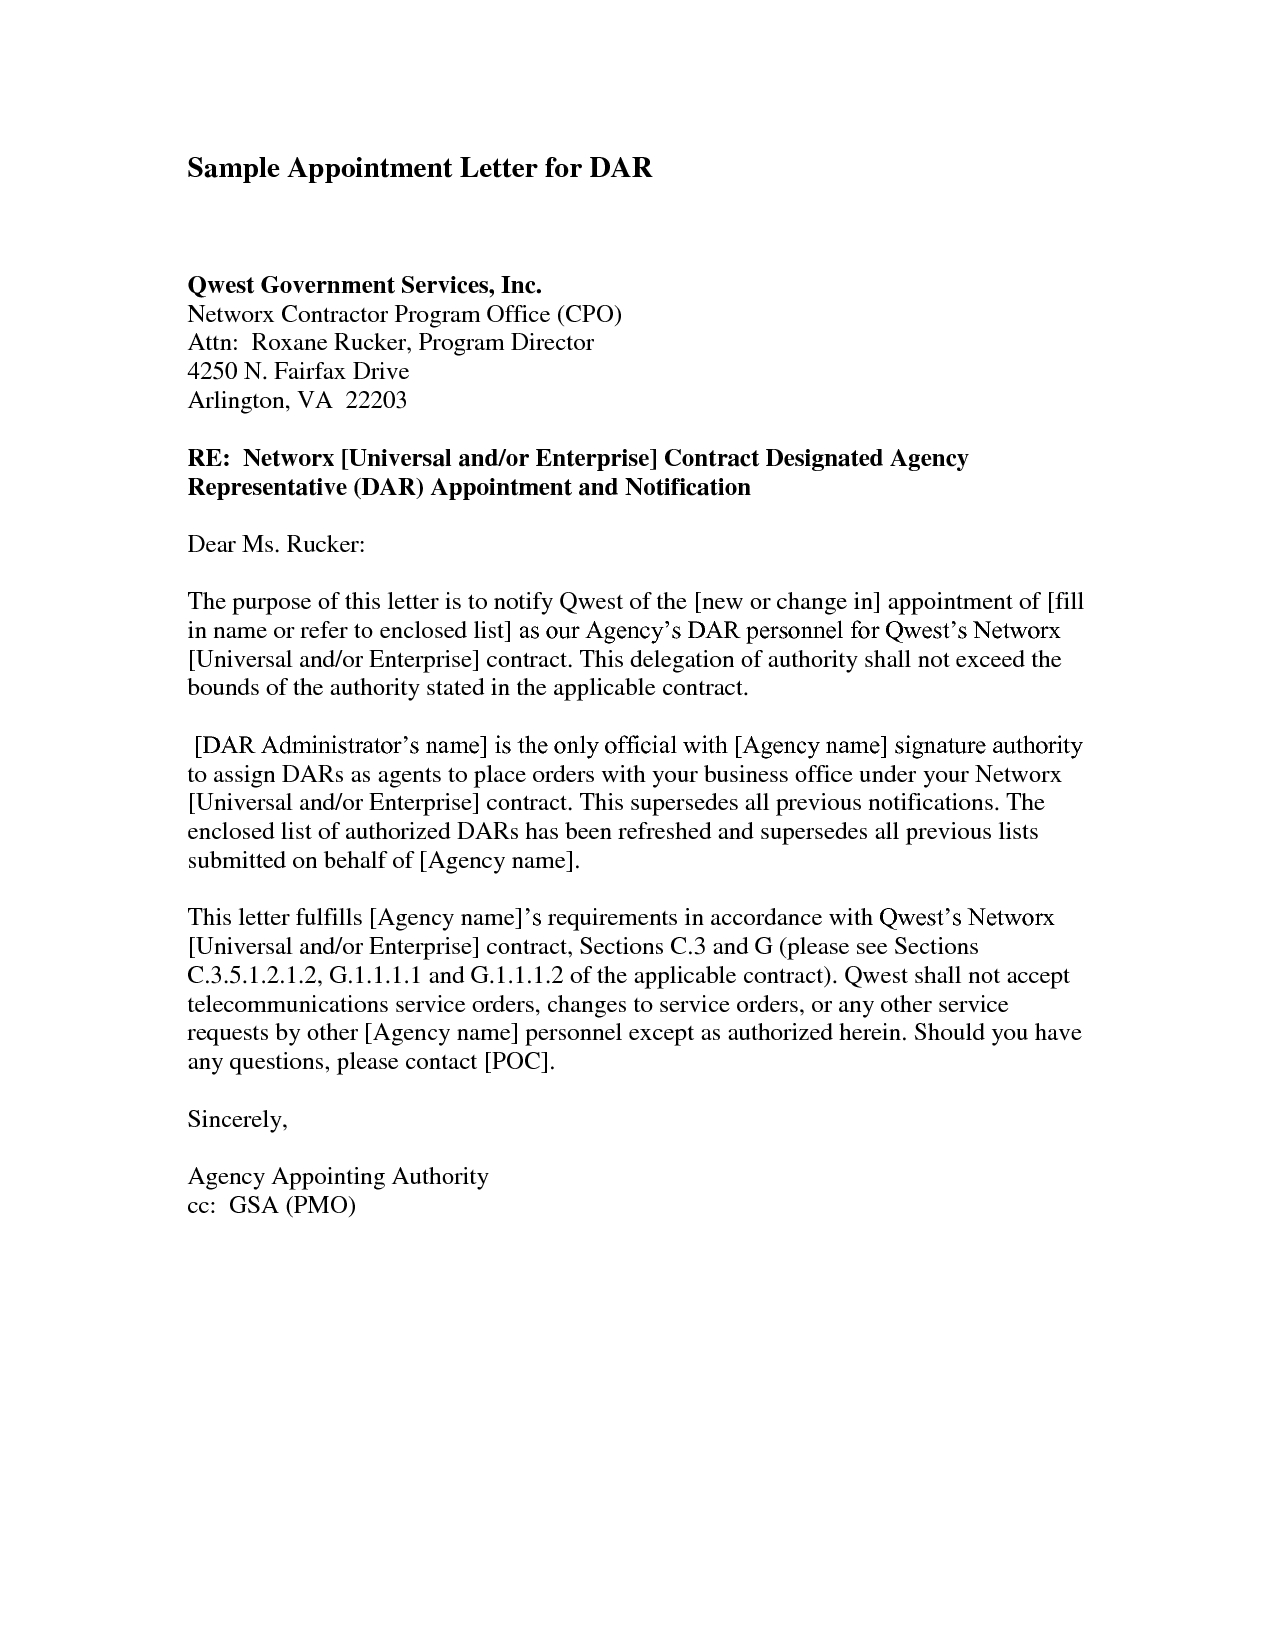 How to Make A Donation Letter Template - Trustee Appointment Letter Director Trustee is Appointed or